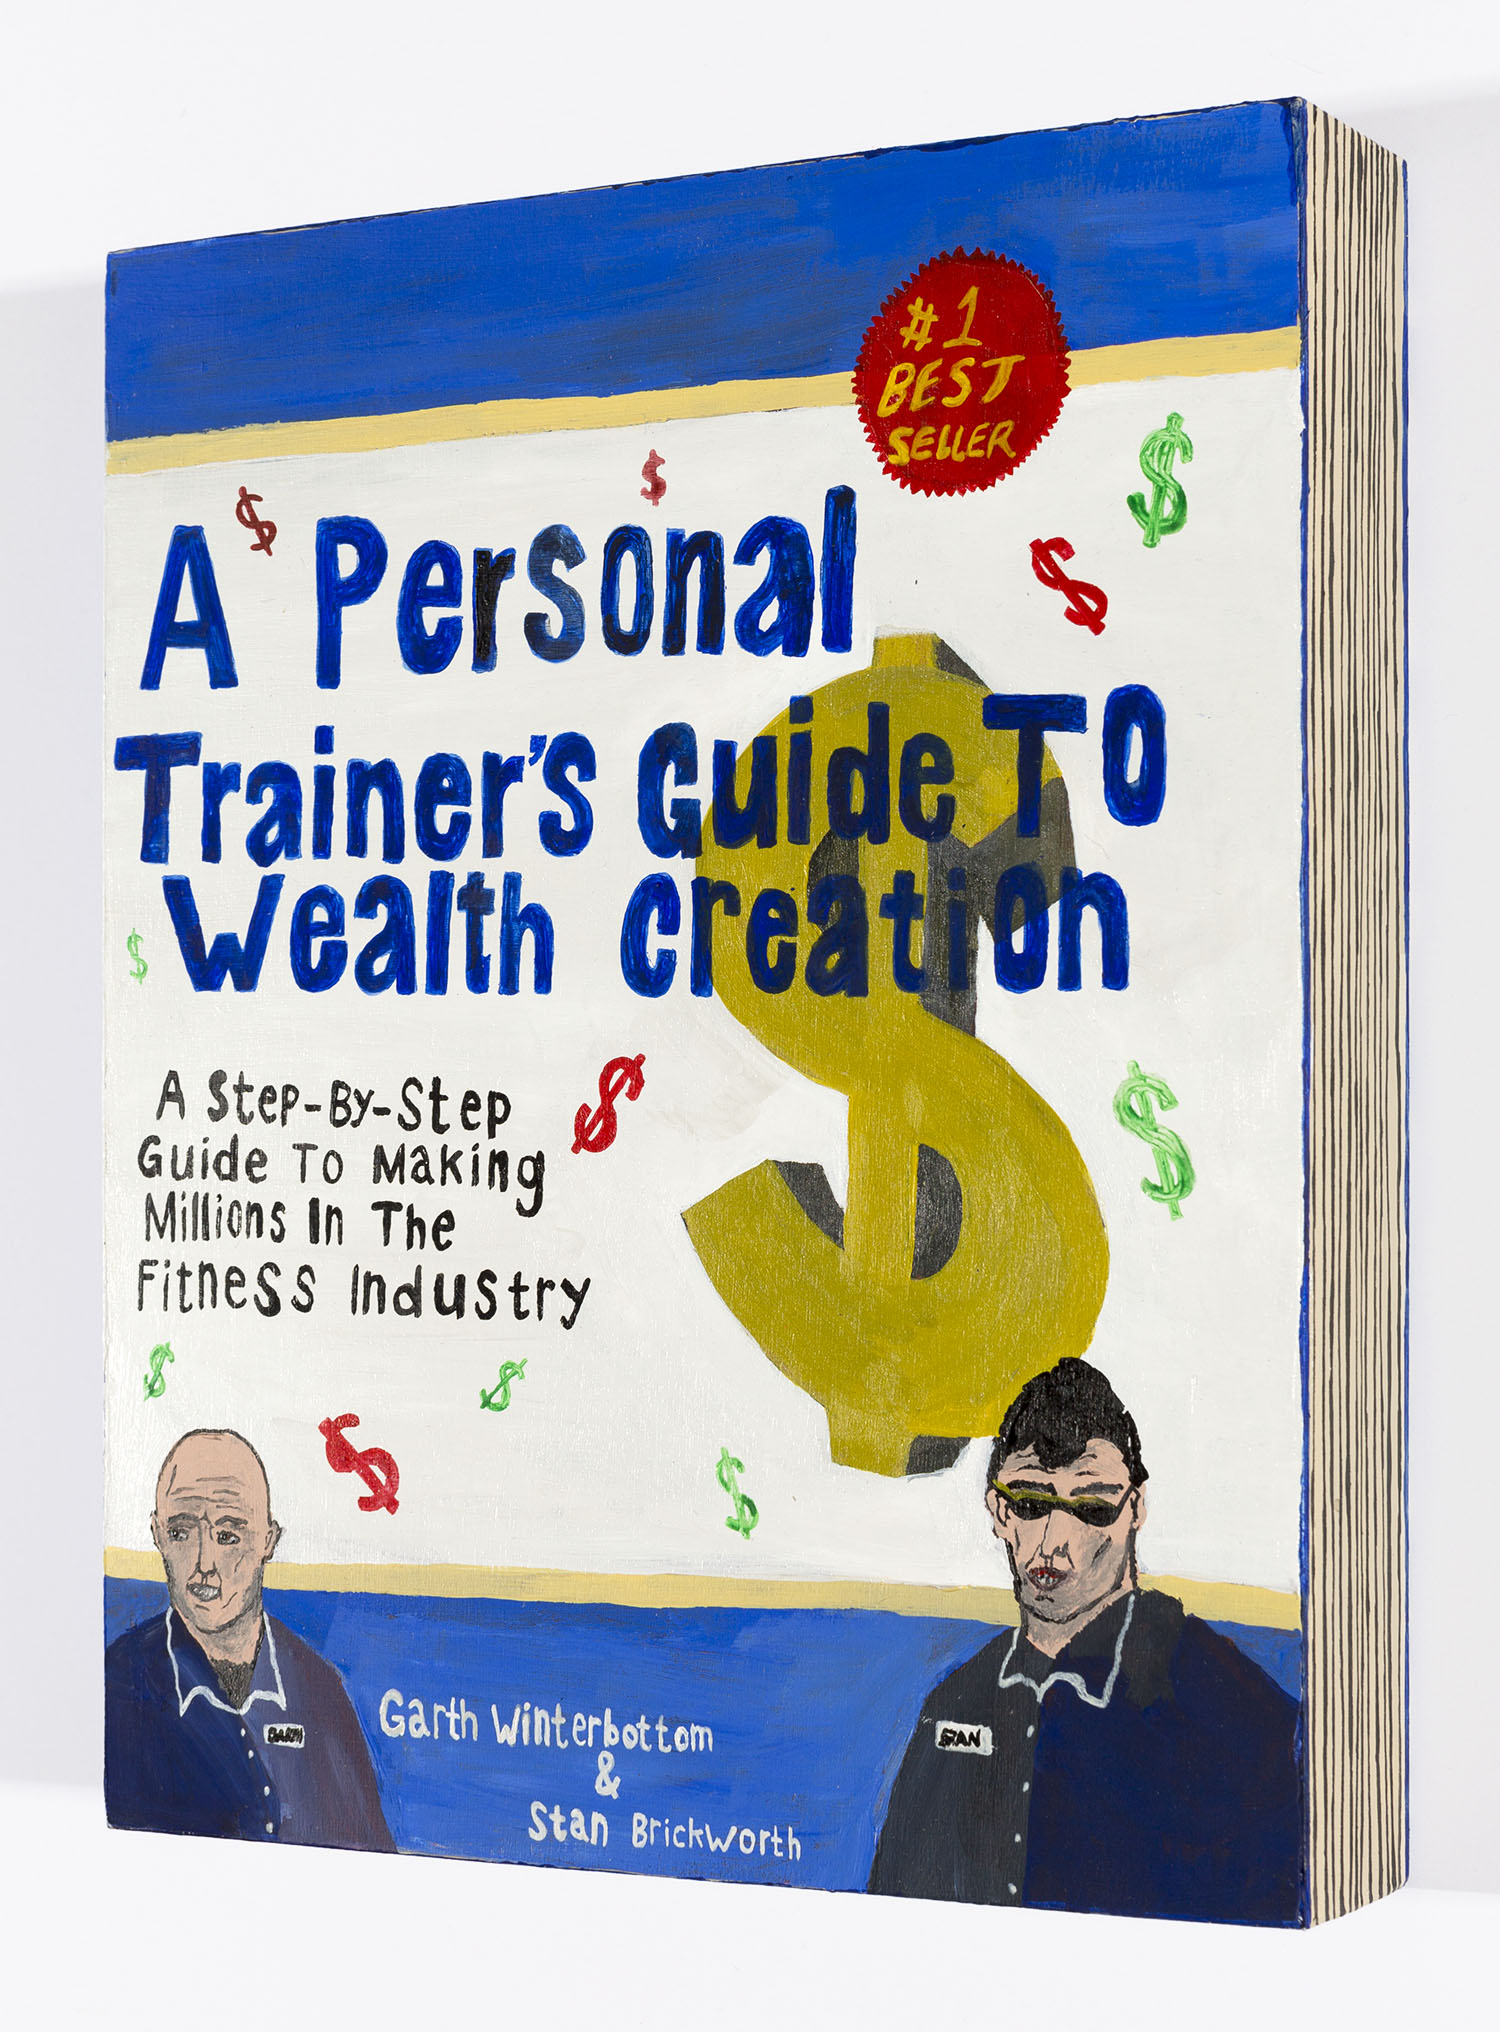 A Personal Trainers Guide To Wealth Creation